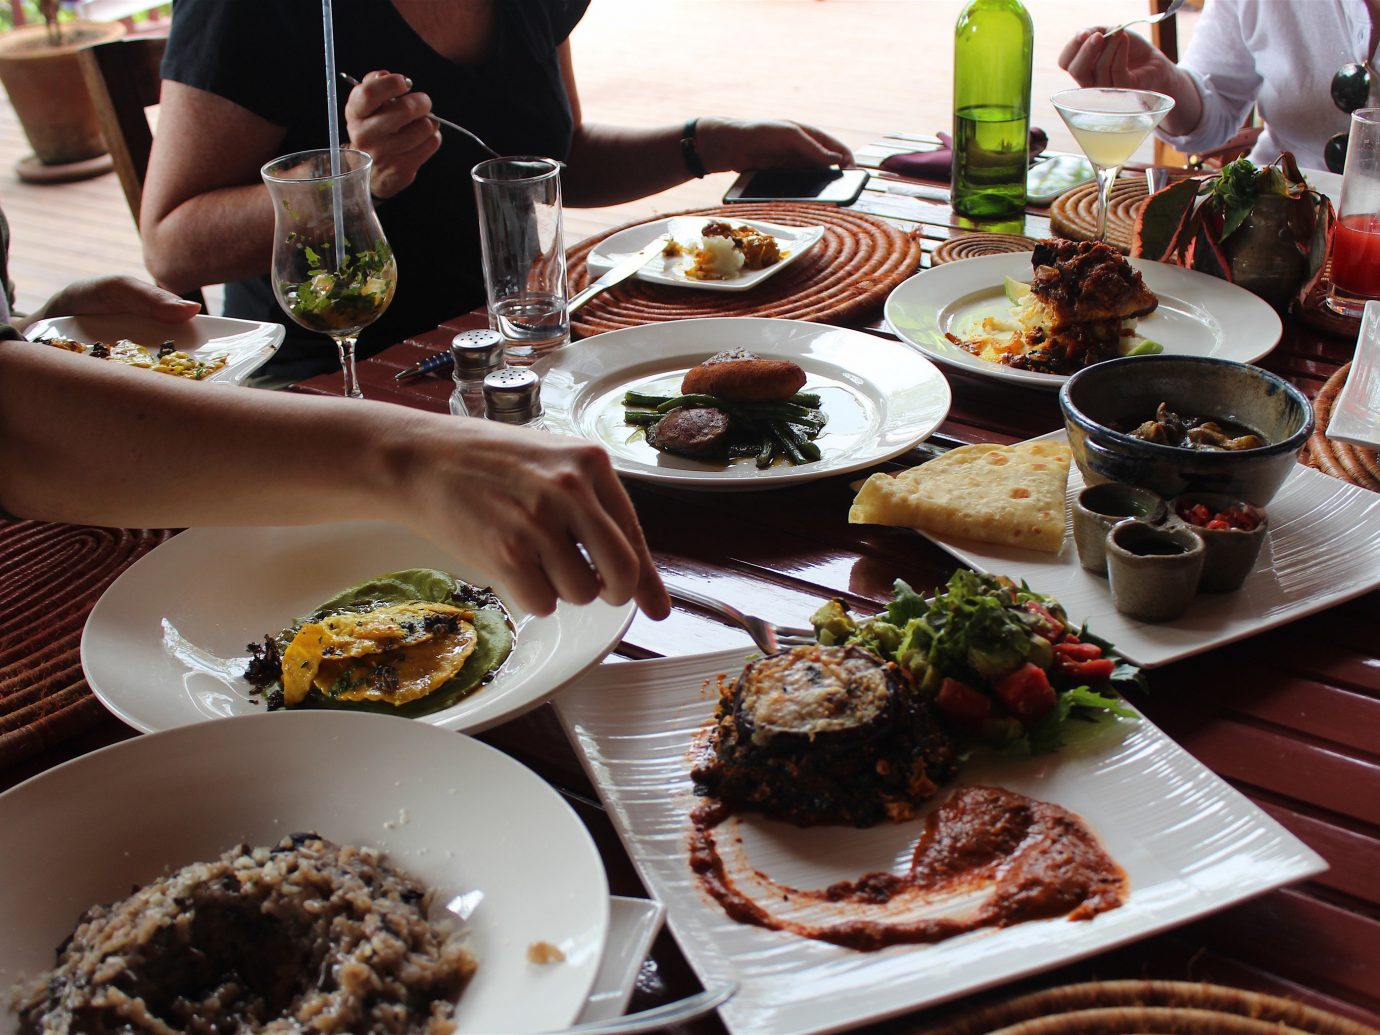 africa Trip Ideas table plate food meal dish brunch cuisine lunch breakfast appetizer dinner supper meze asian food caucasian cuisine full breakfast meat animal source foods different several